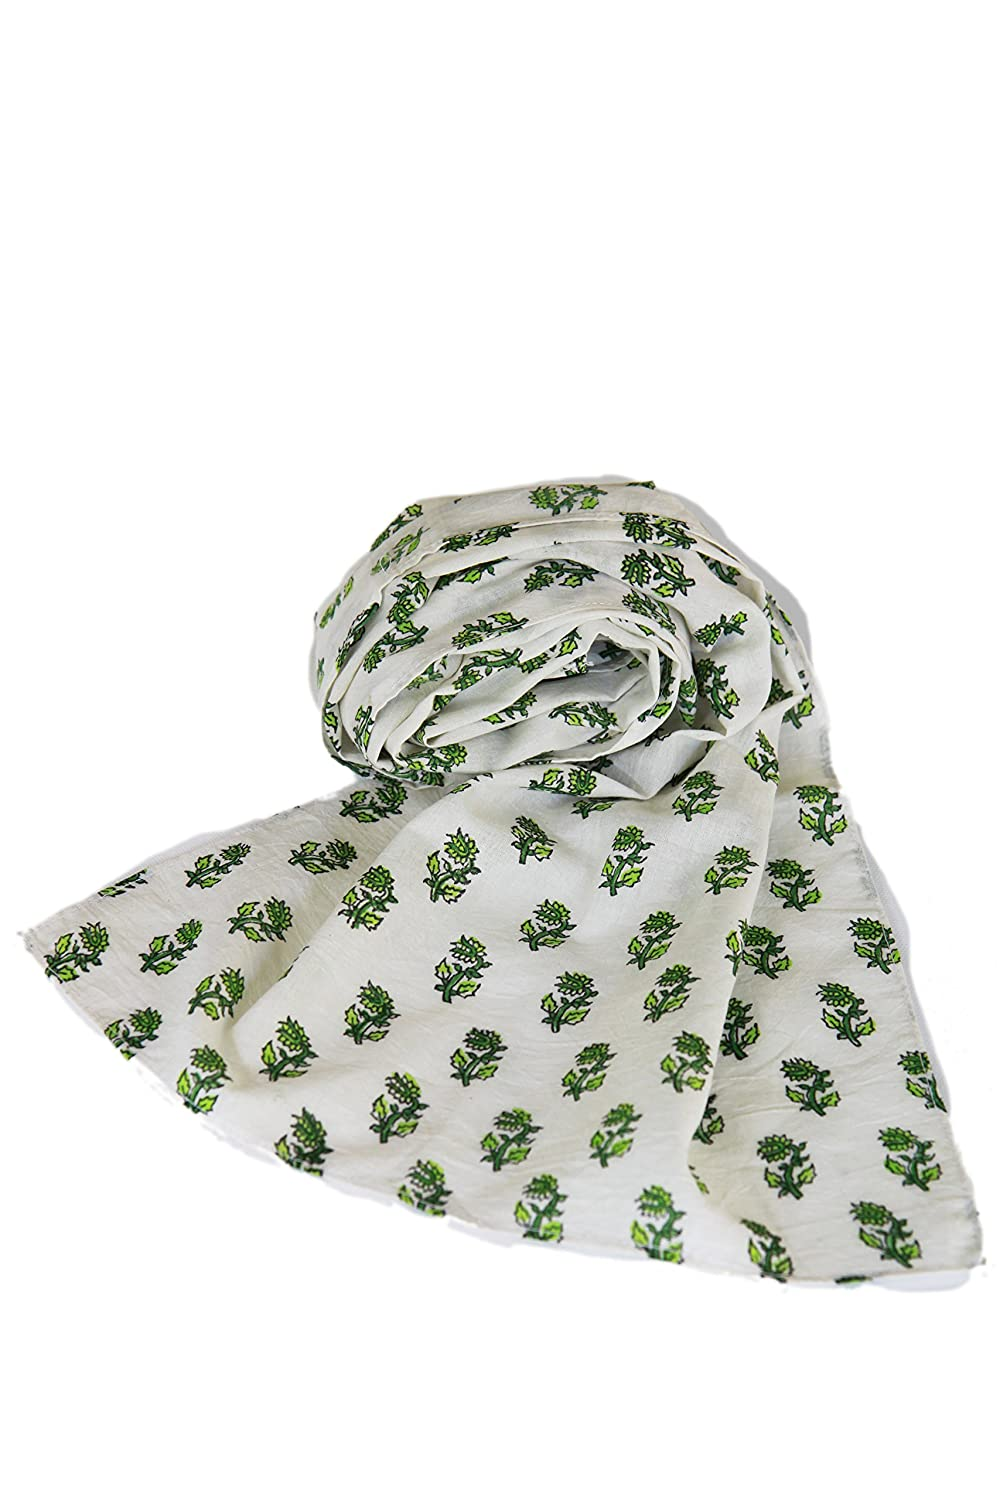 Long Cotton Scarf -Fashion - Fall / Winter accessories - Green Leaves Print